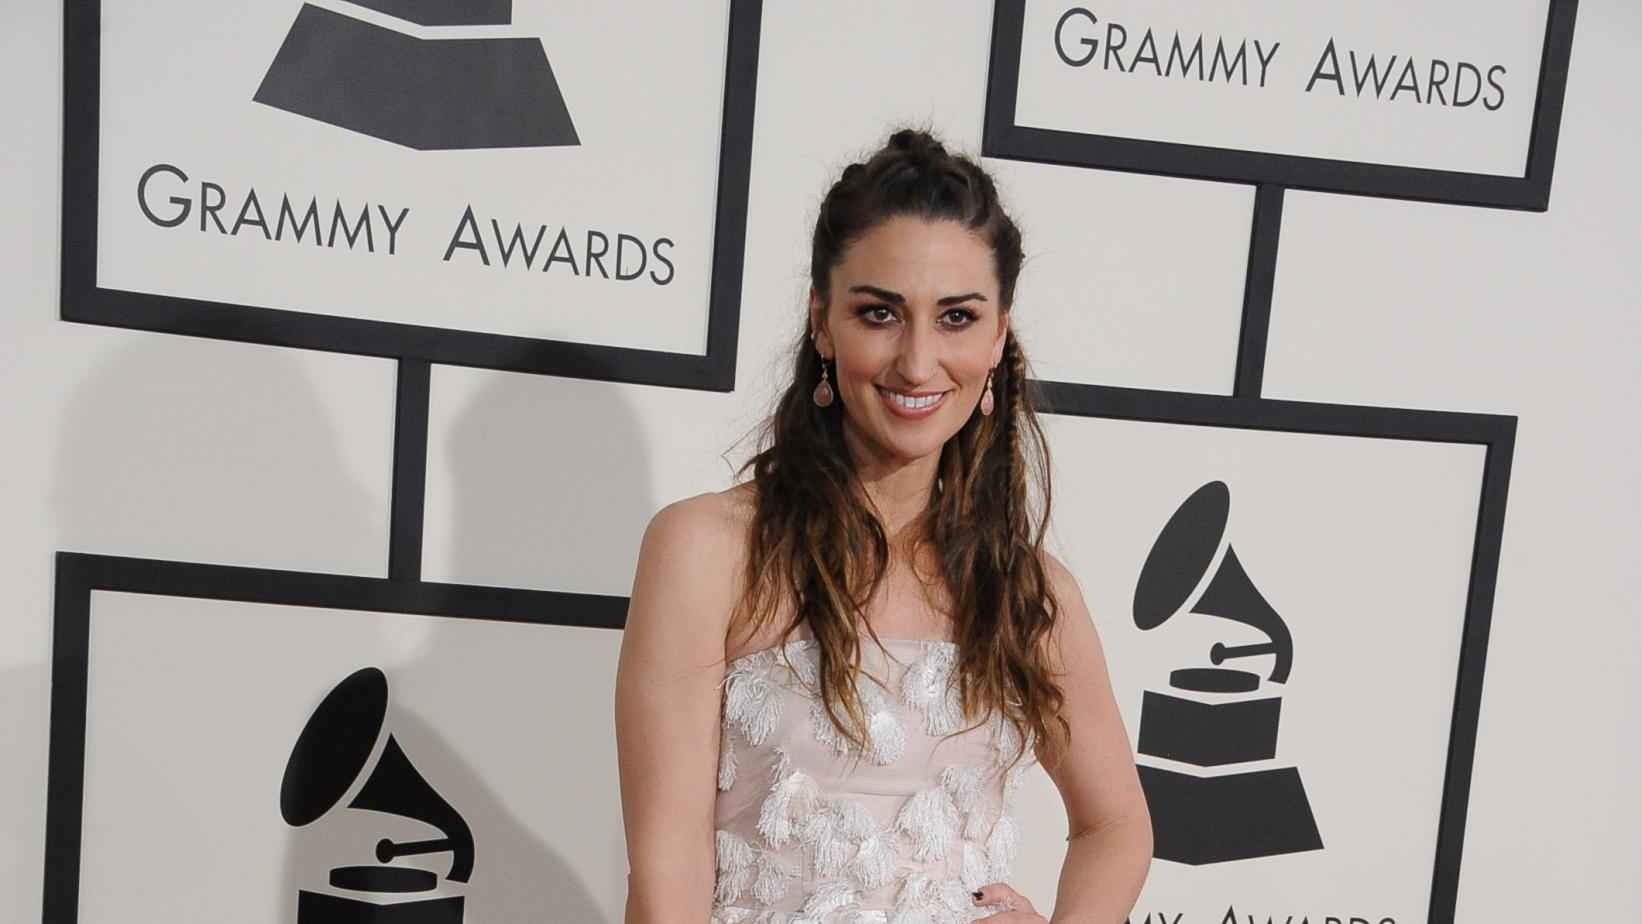 Sara Bareilles at the 56th GRAMMY Awards in 2014